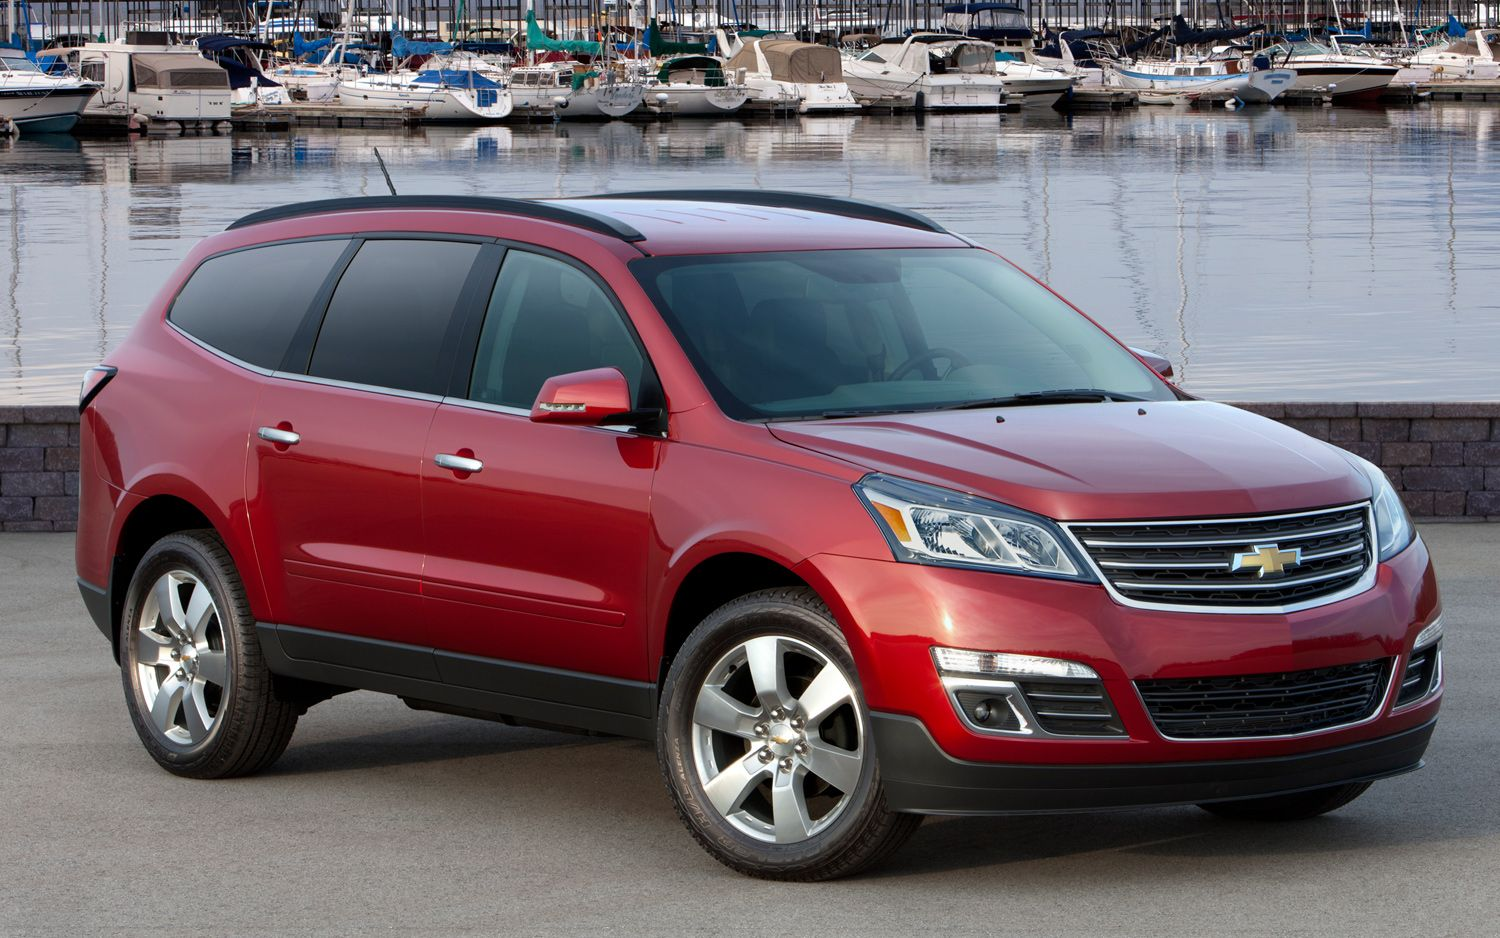 Top 10 Best Family Cars For Trips And Getaways Buying a family car